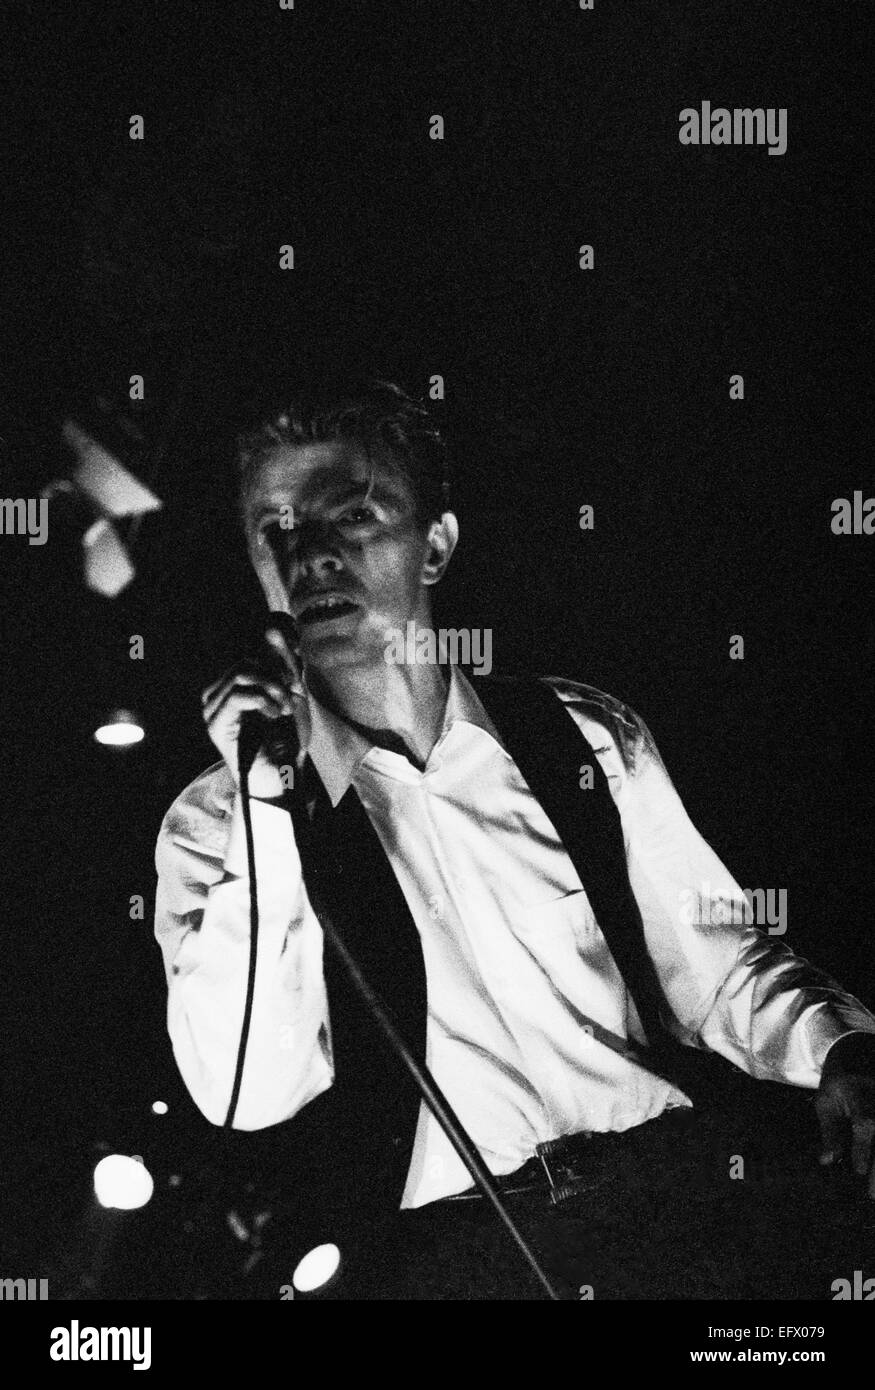 David Bowie in concert on the Sound & Vision Tour in 1990 Italy Stock Photo